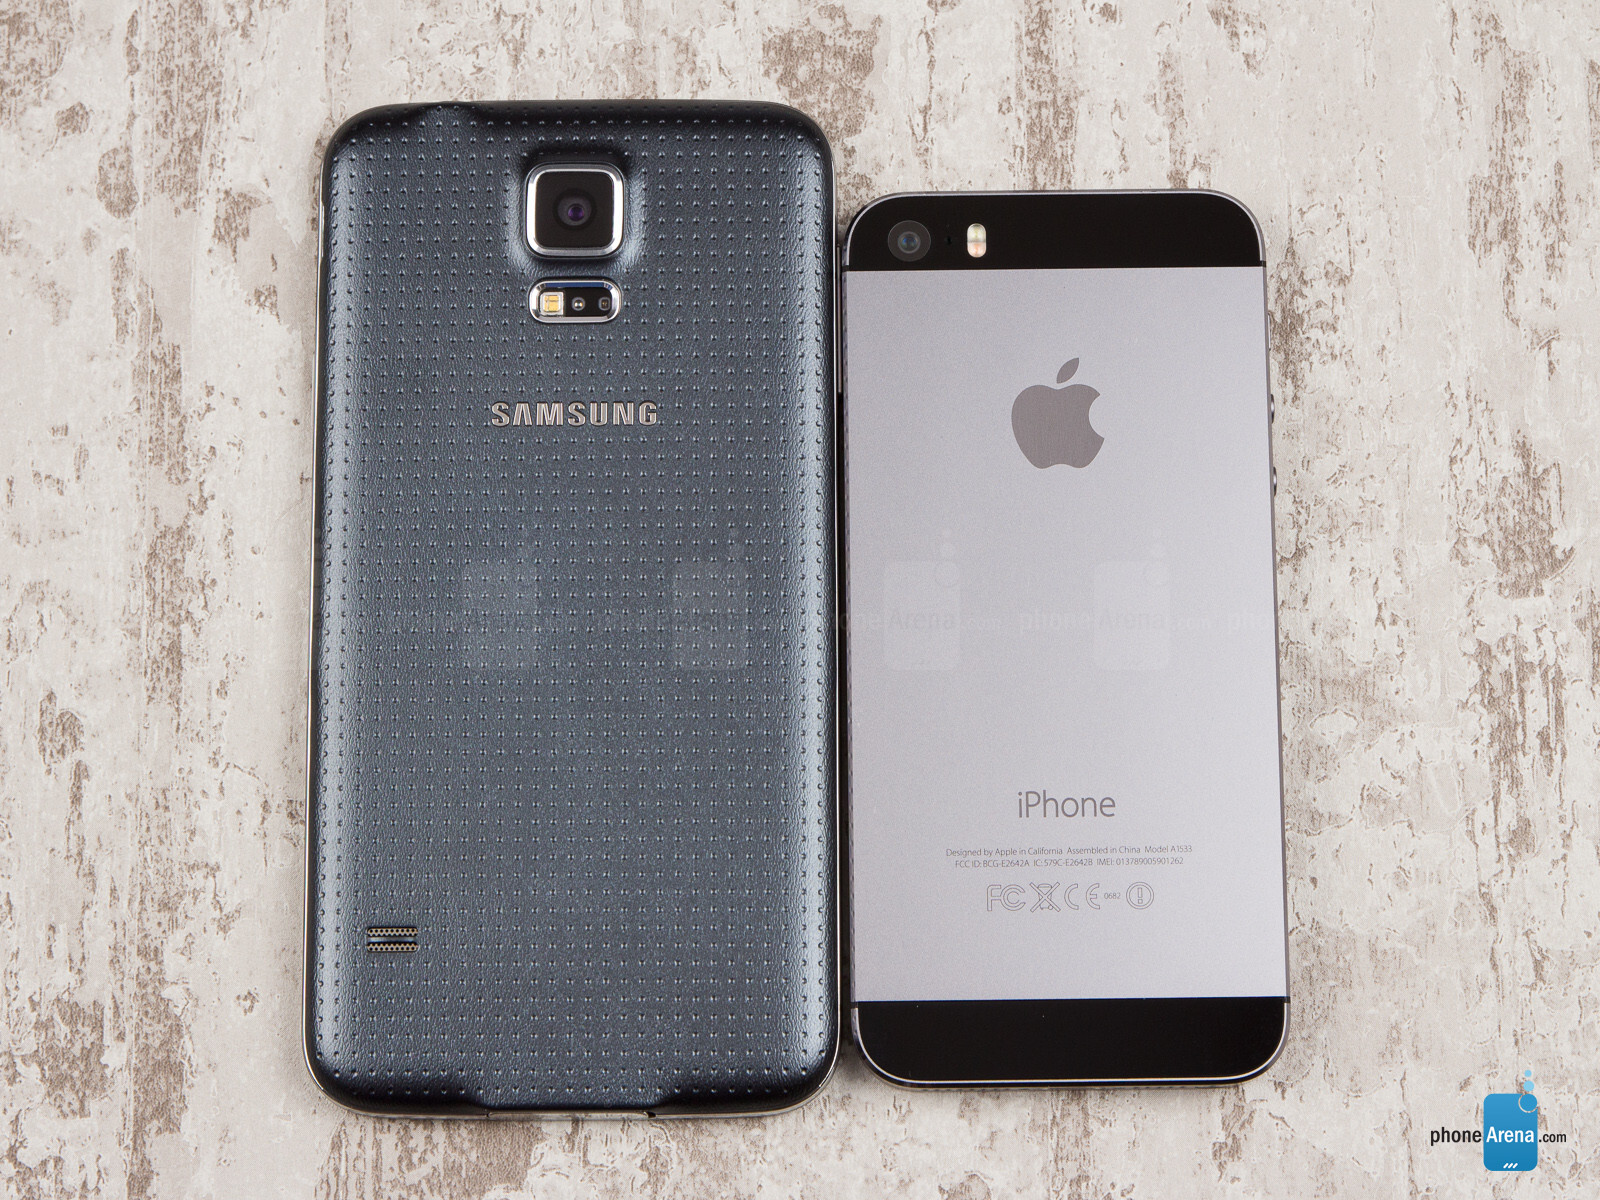 Samsung galaxy s5 of iphone 5s